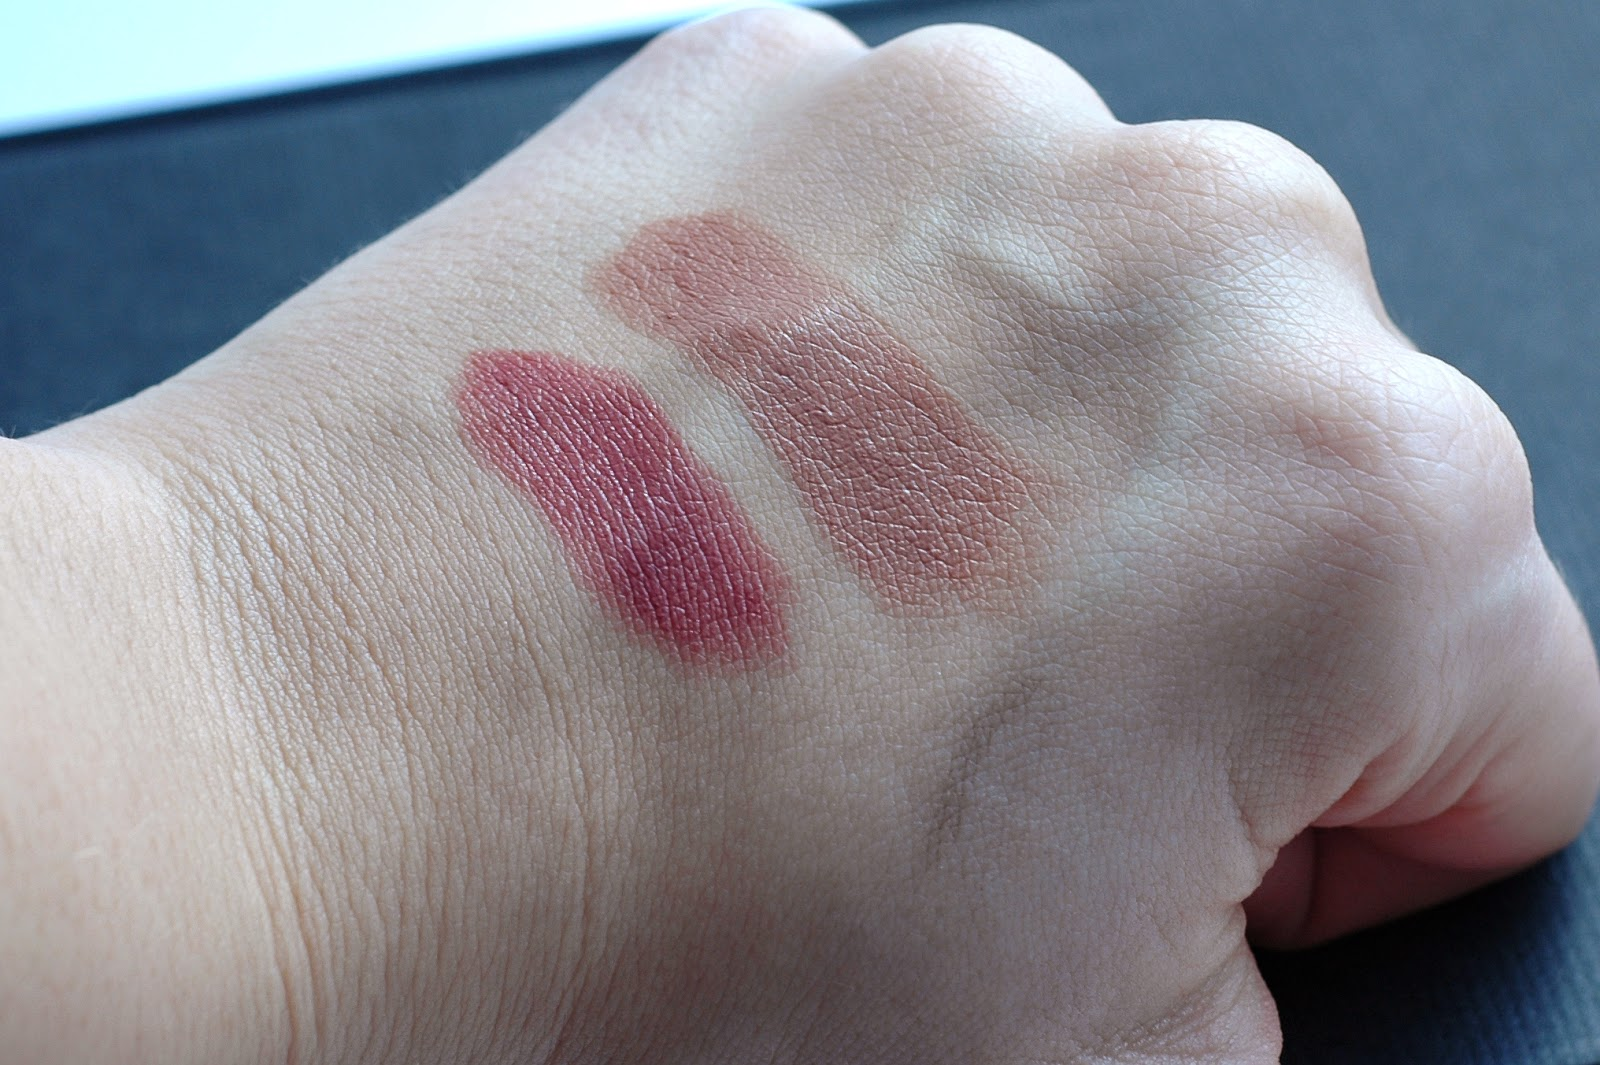 Swatches essence longlasting lipstick barely there und Maybelline Superstay Lippenstigft in Beige for Good